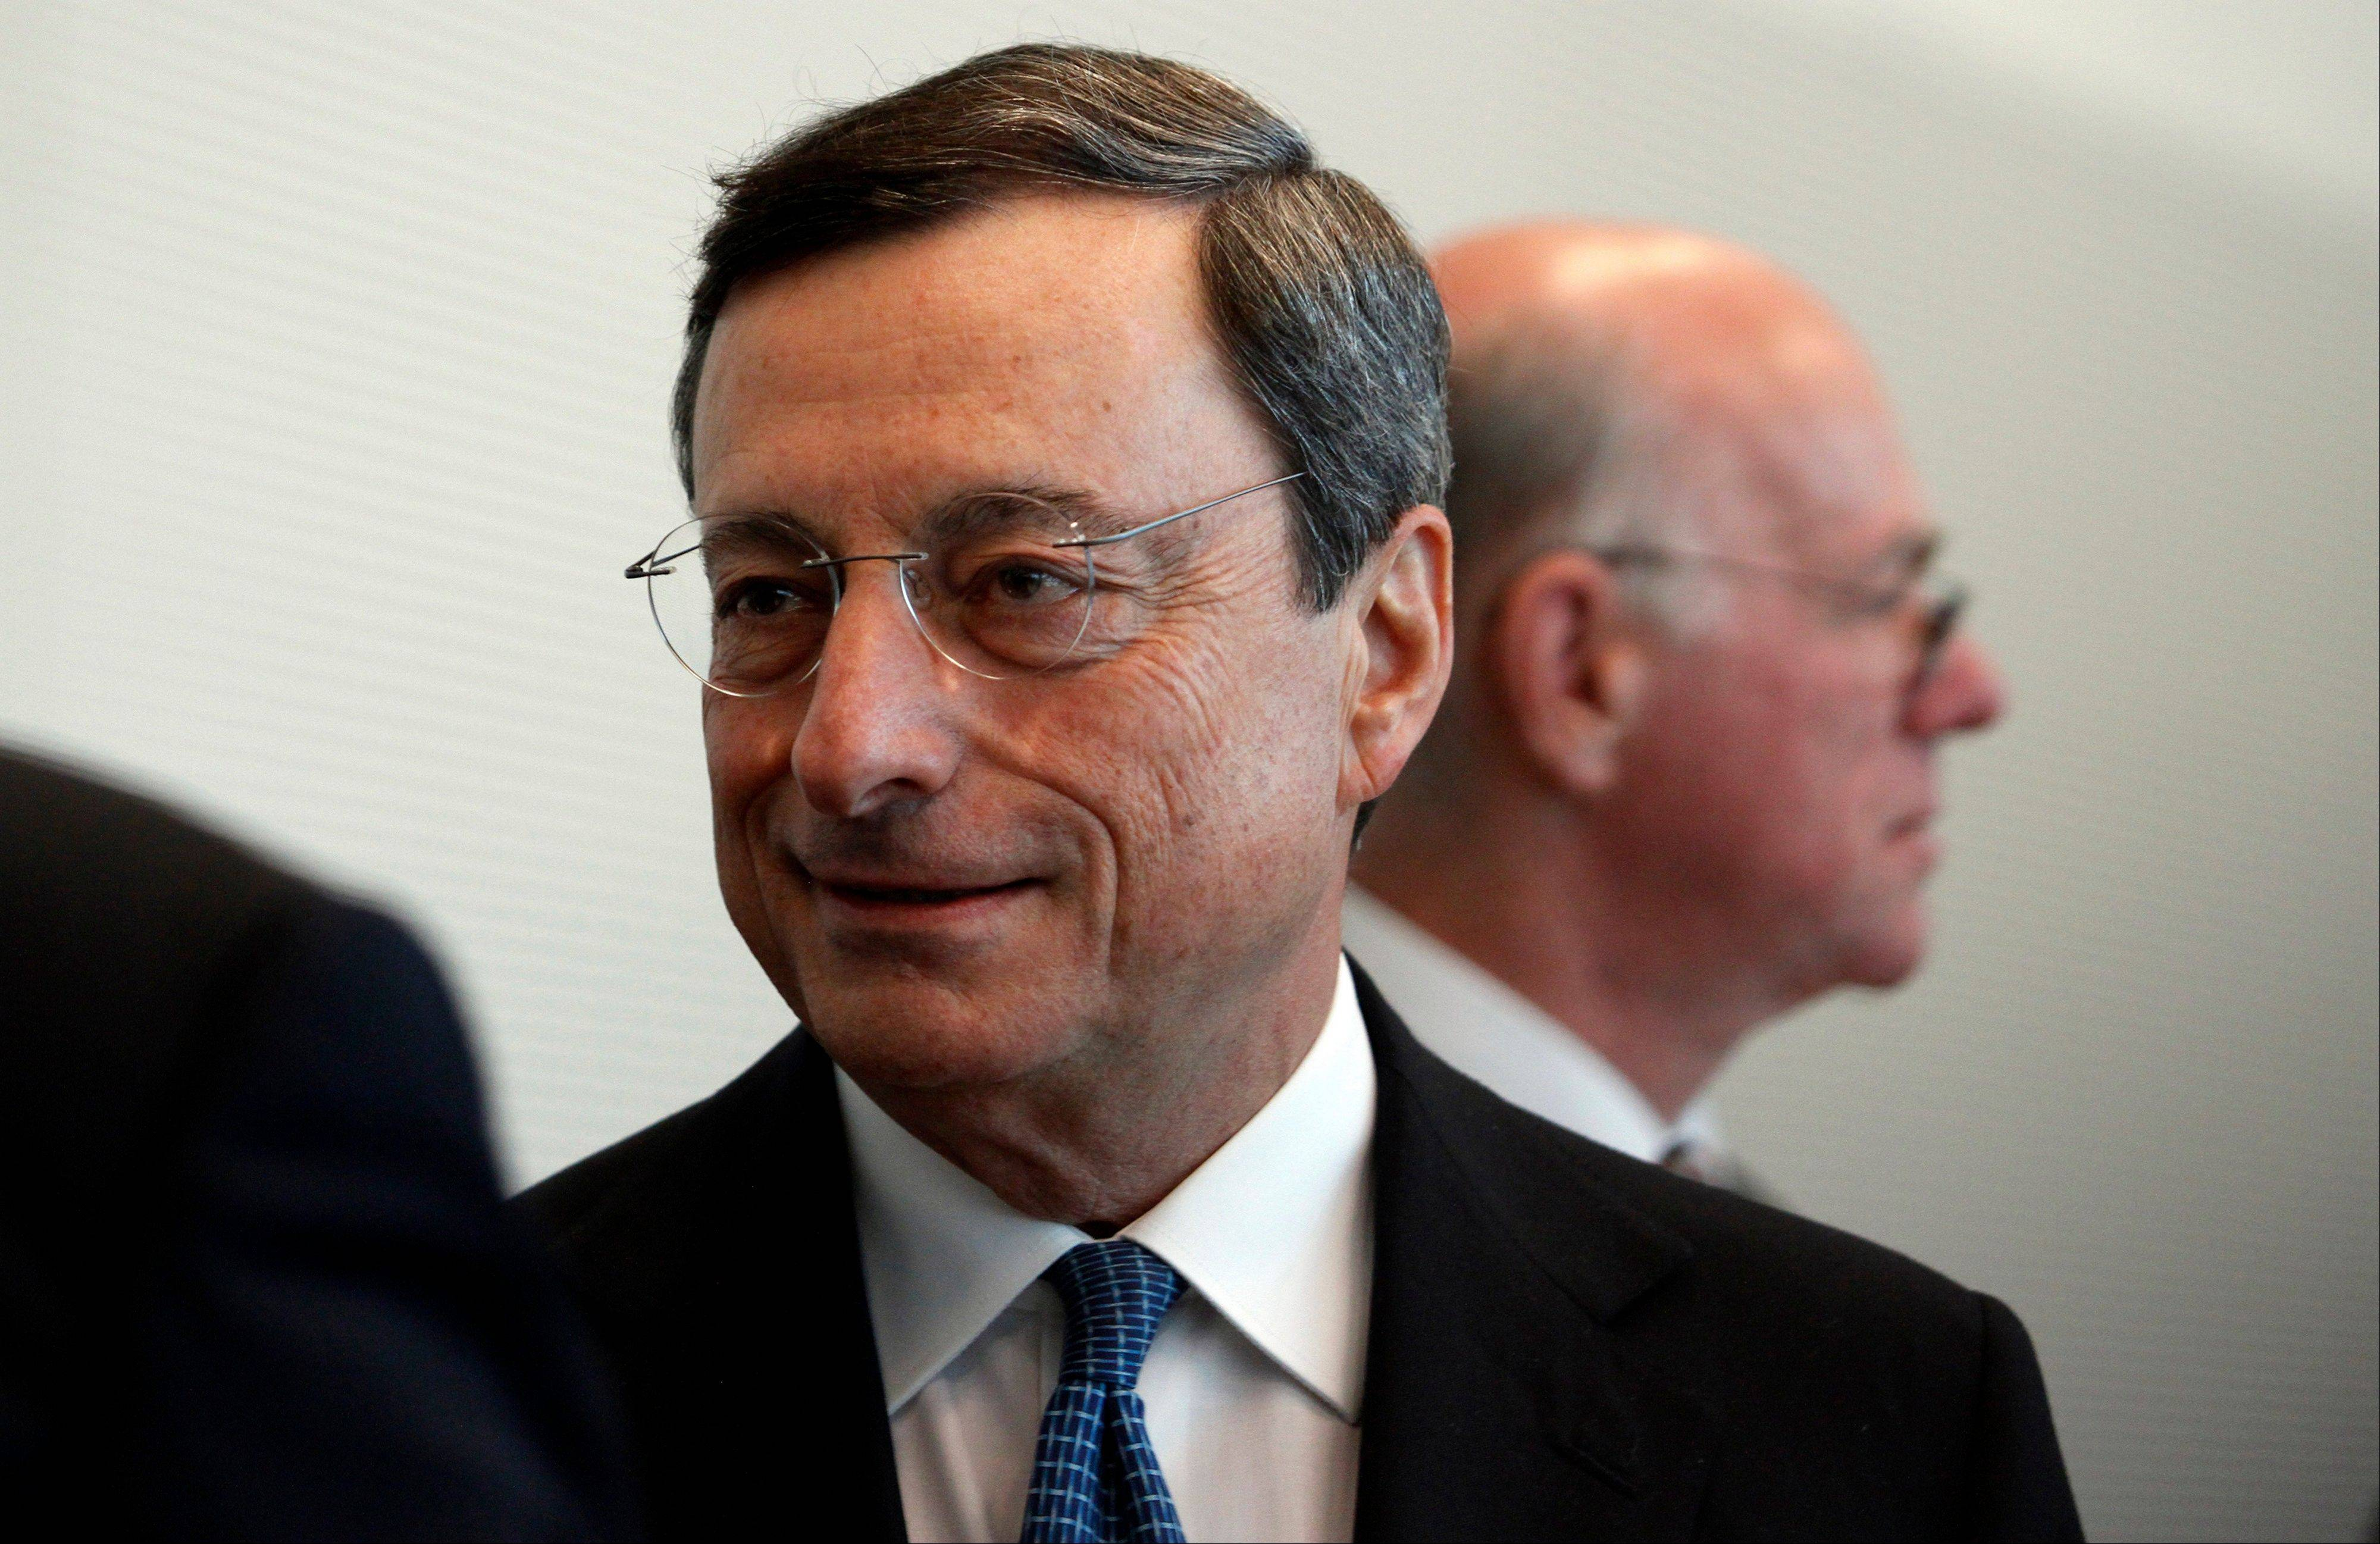 Mario Draghi, president of the European Central Bank (ECB), center, arrives to speak to lawmakers in the lower-house of the German parliament in Berlin, Germany, on Wednesday, Oct. 24, 2012. Draghi defended his plan to buy government bonds in the German parliament today with a warning about deflation risks.